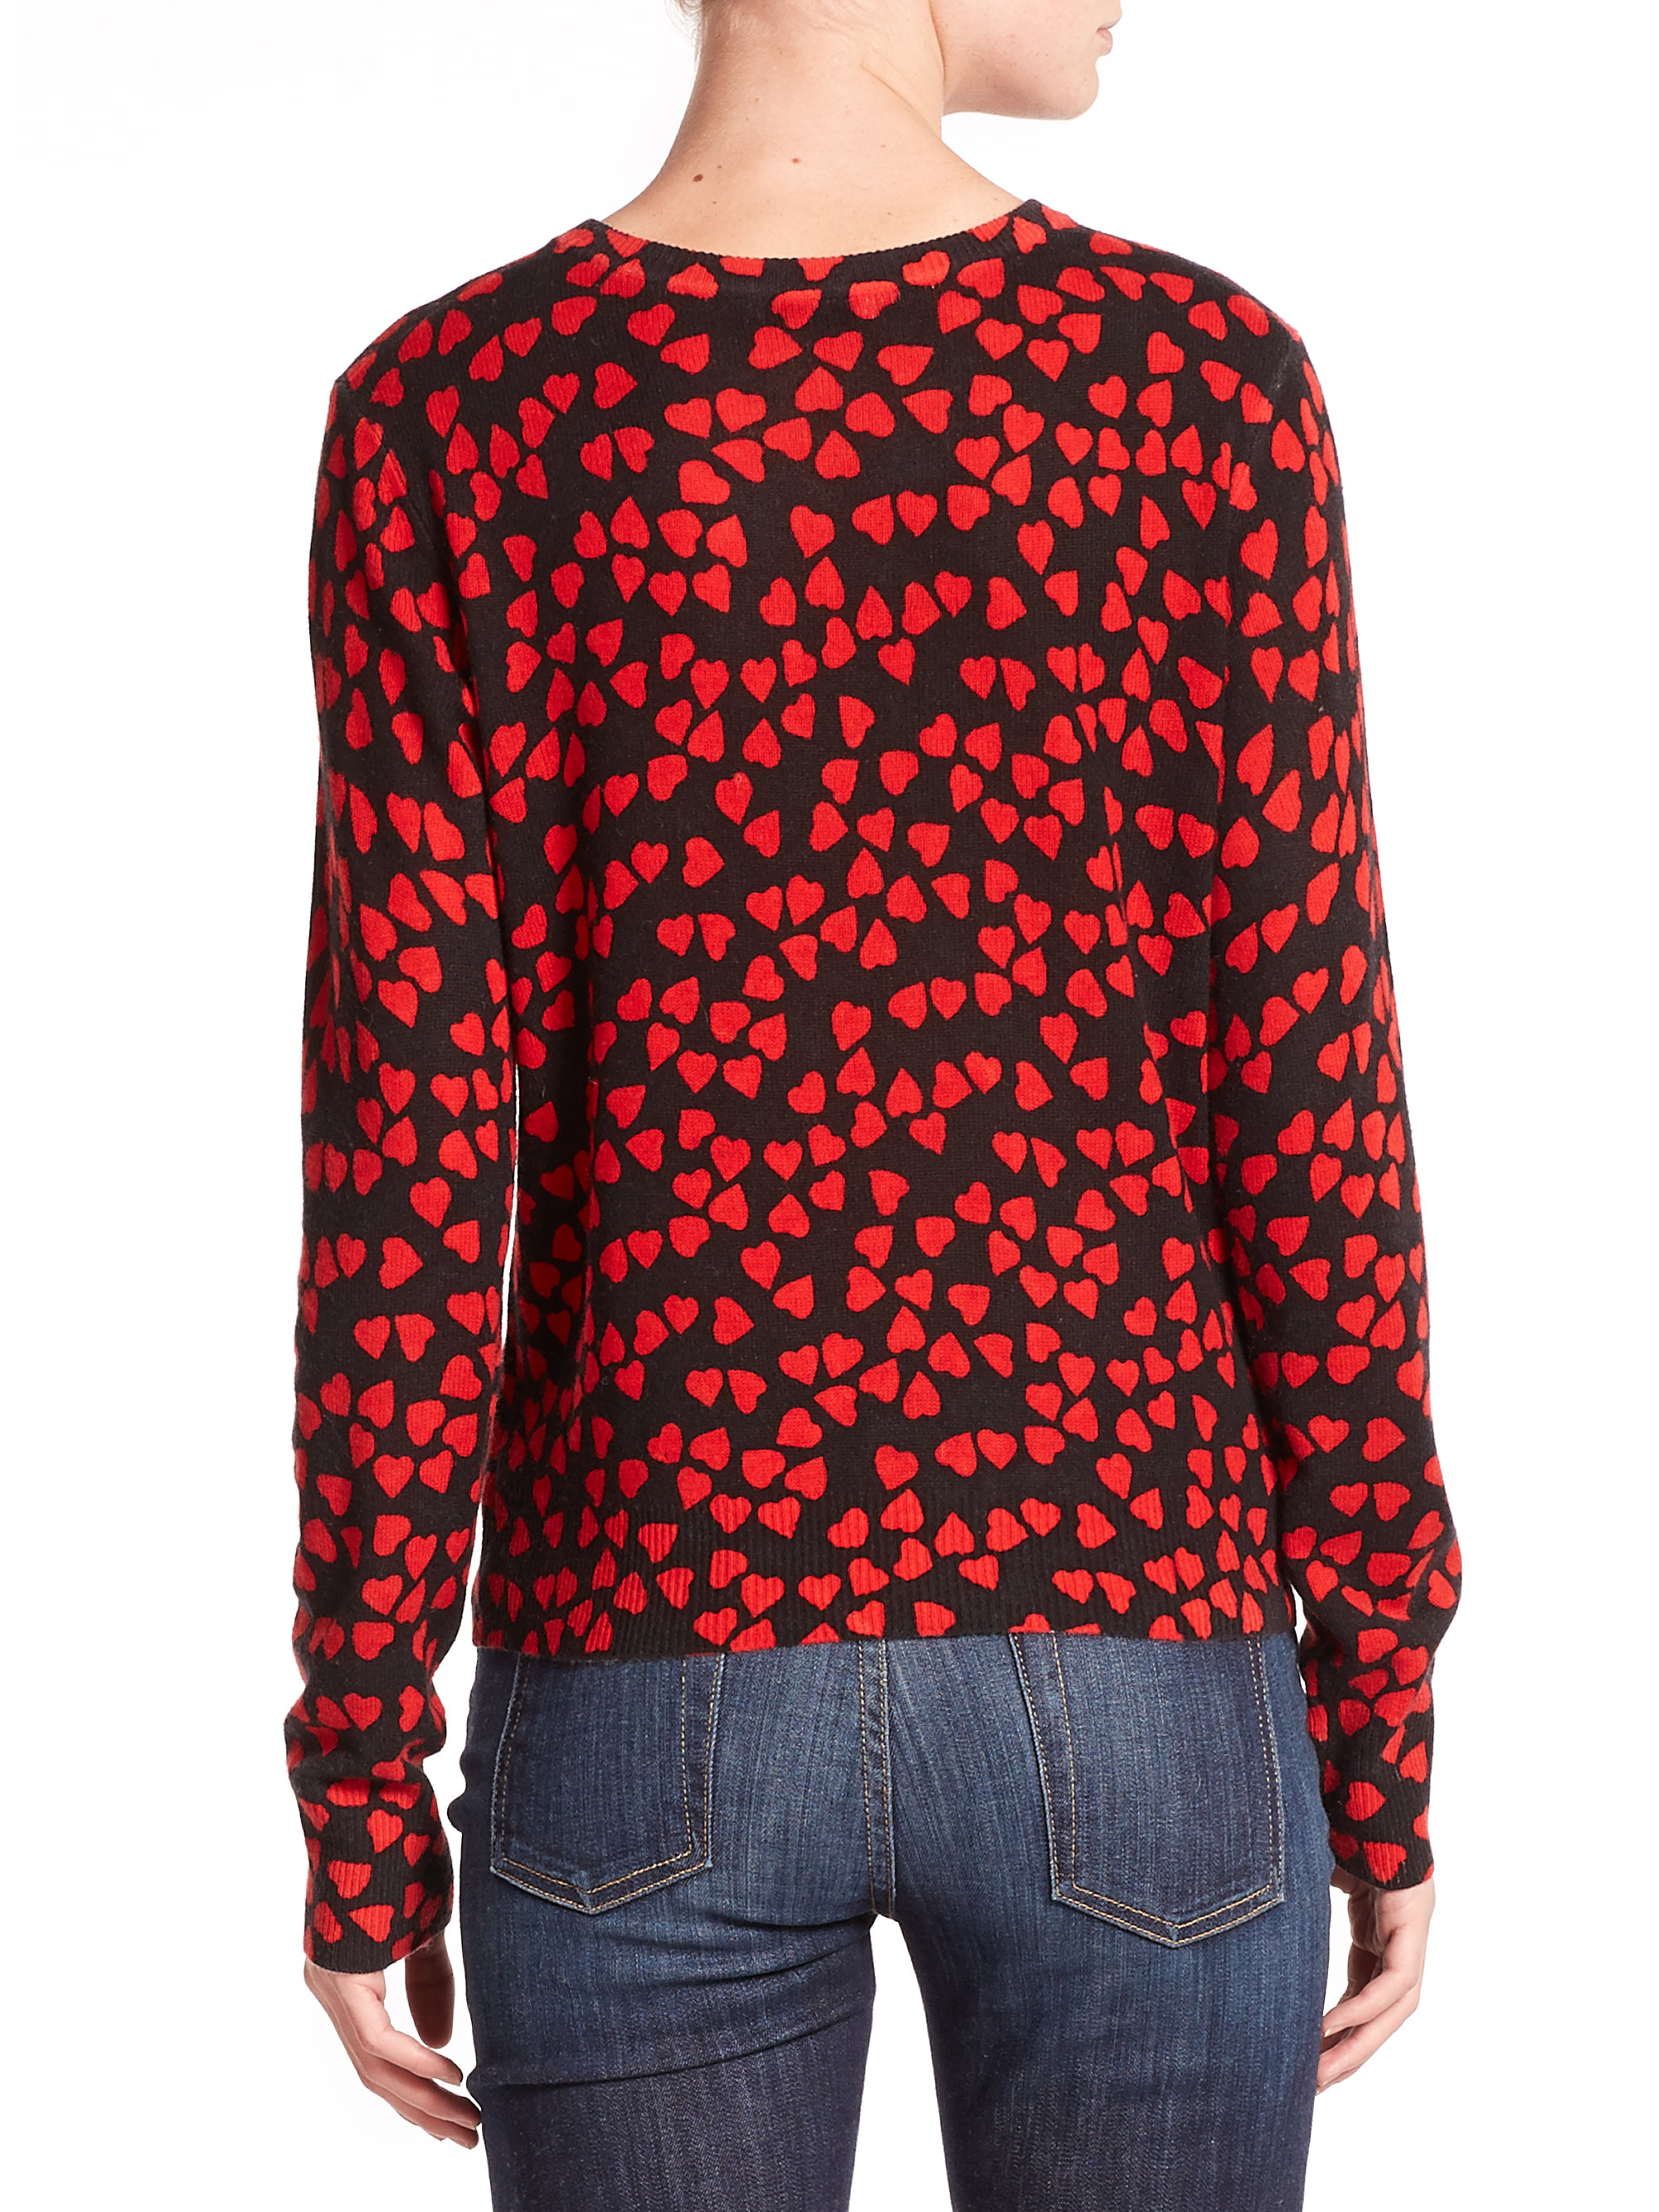 Equipment Shirly Heart-print Cashmere Sweater in Red | Lyst